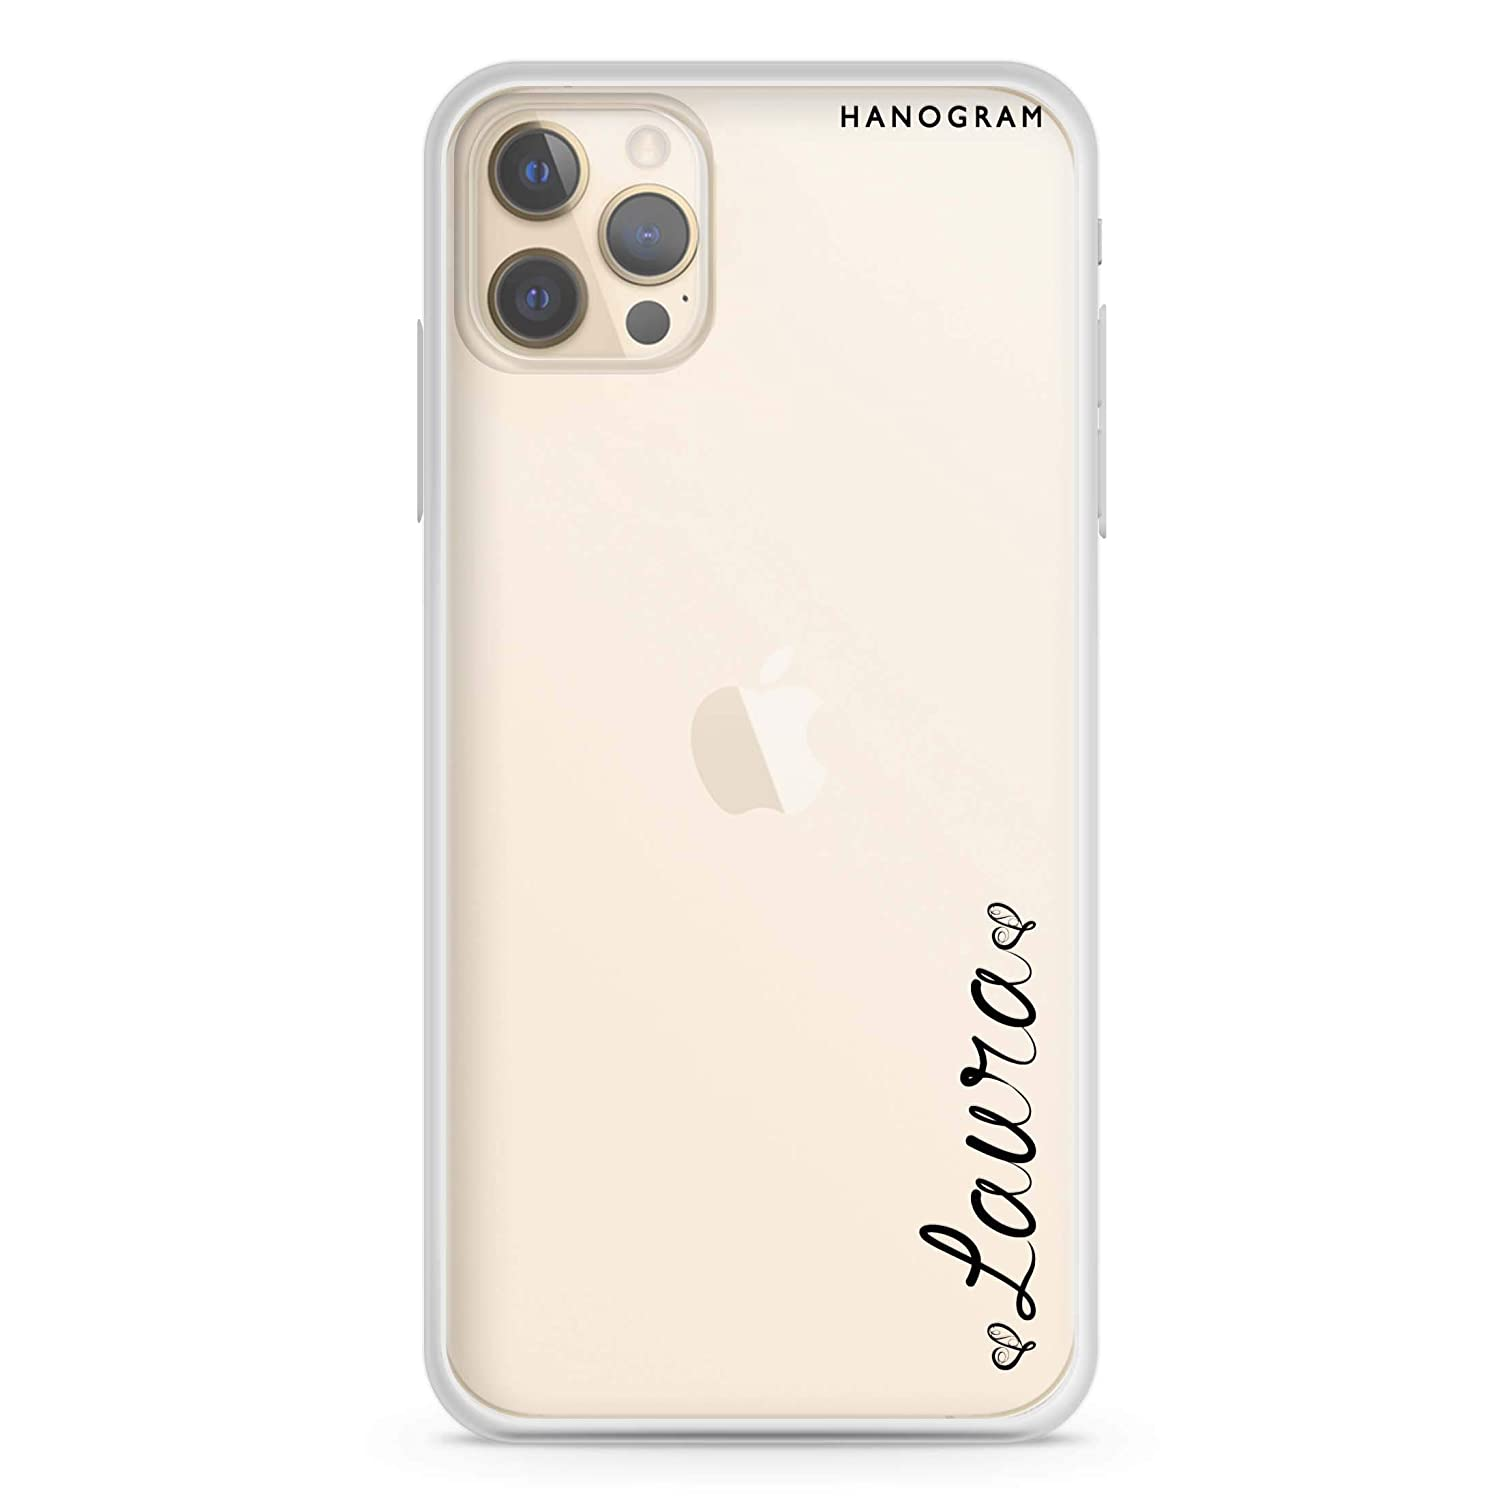 In my heart iPhone 12 Super sale Sale SALE% OFF period limited Soft Pro Max Clear Case